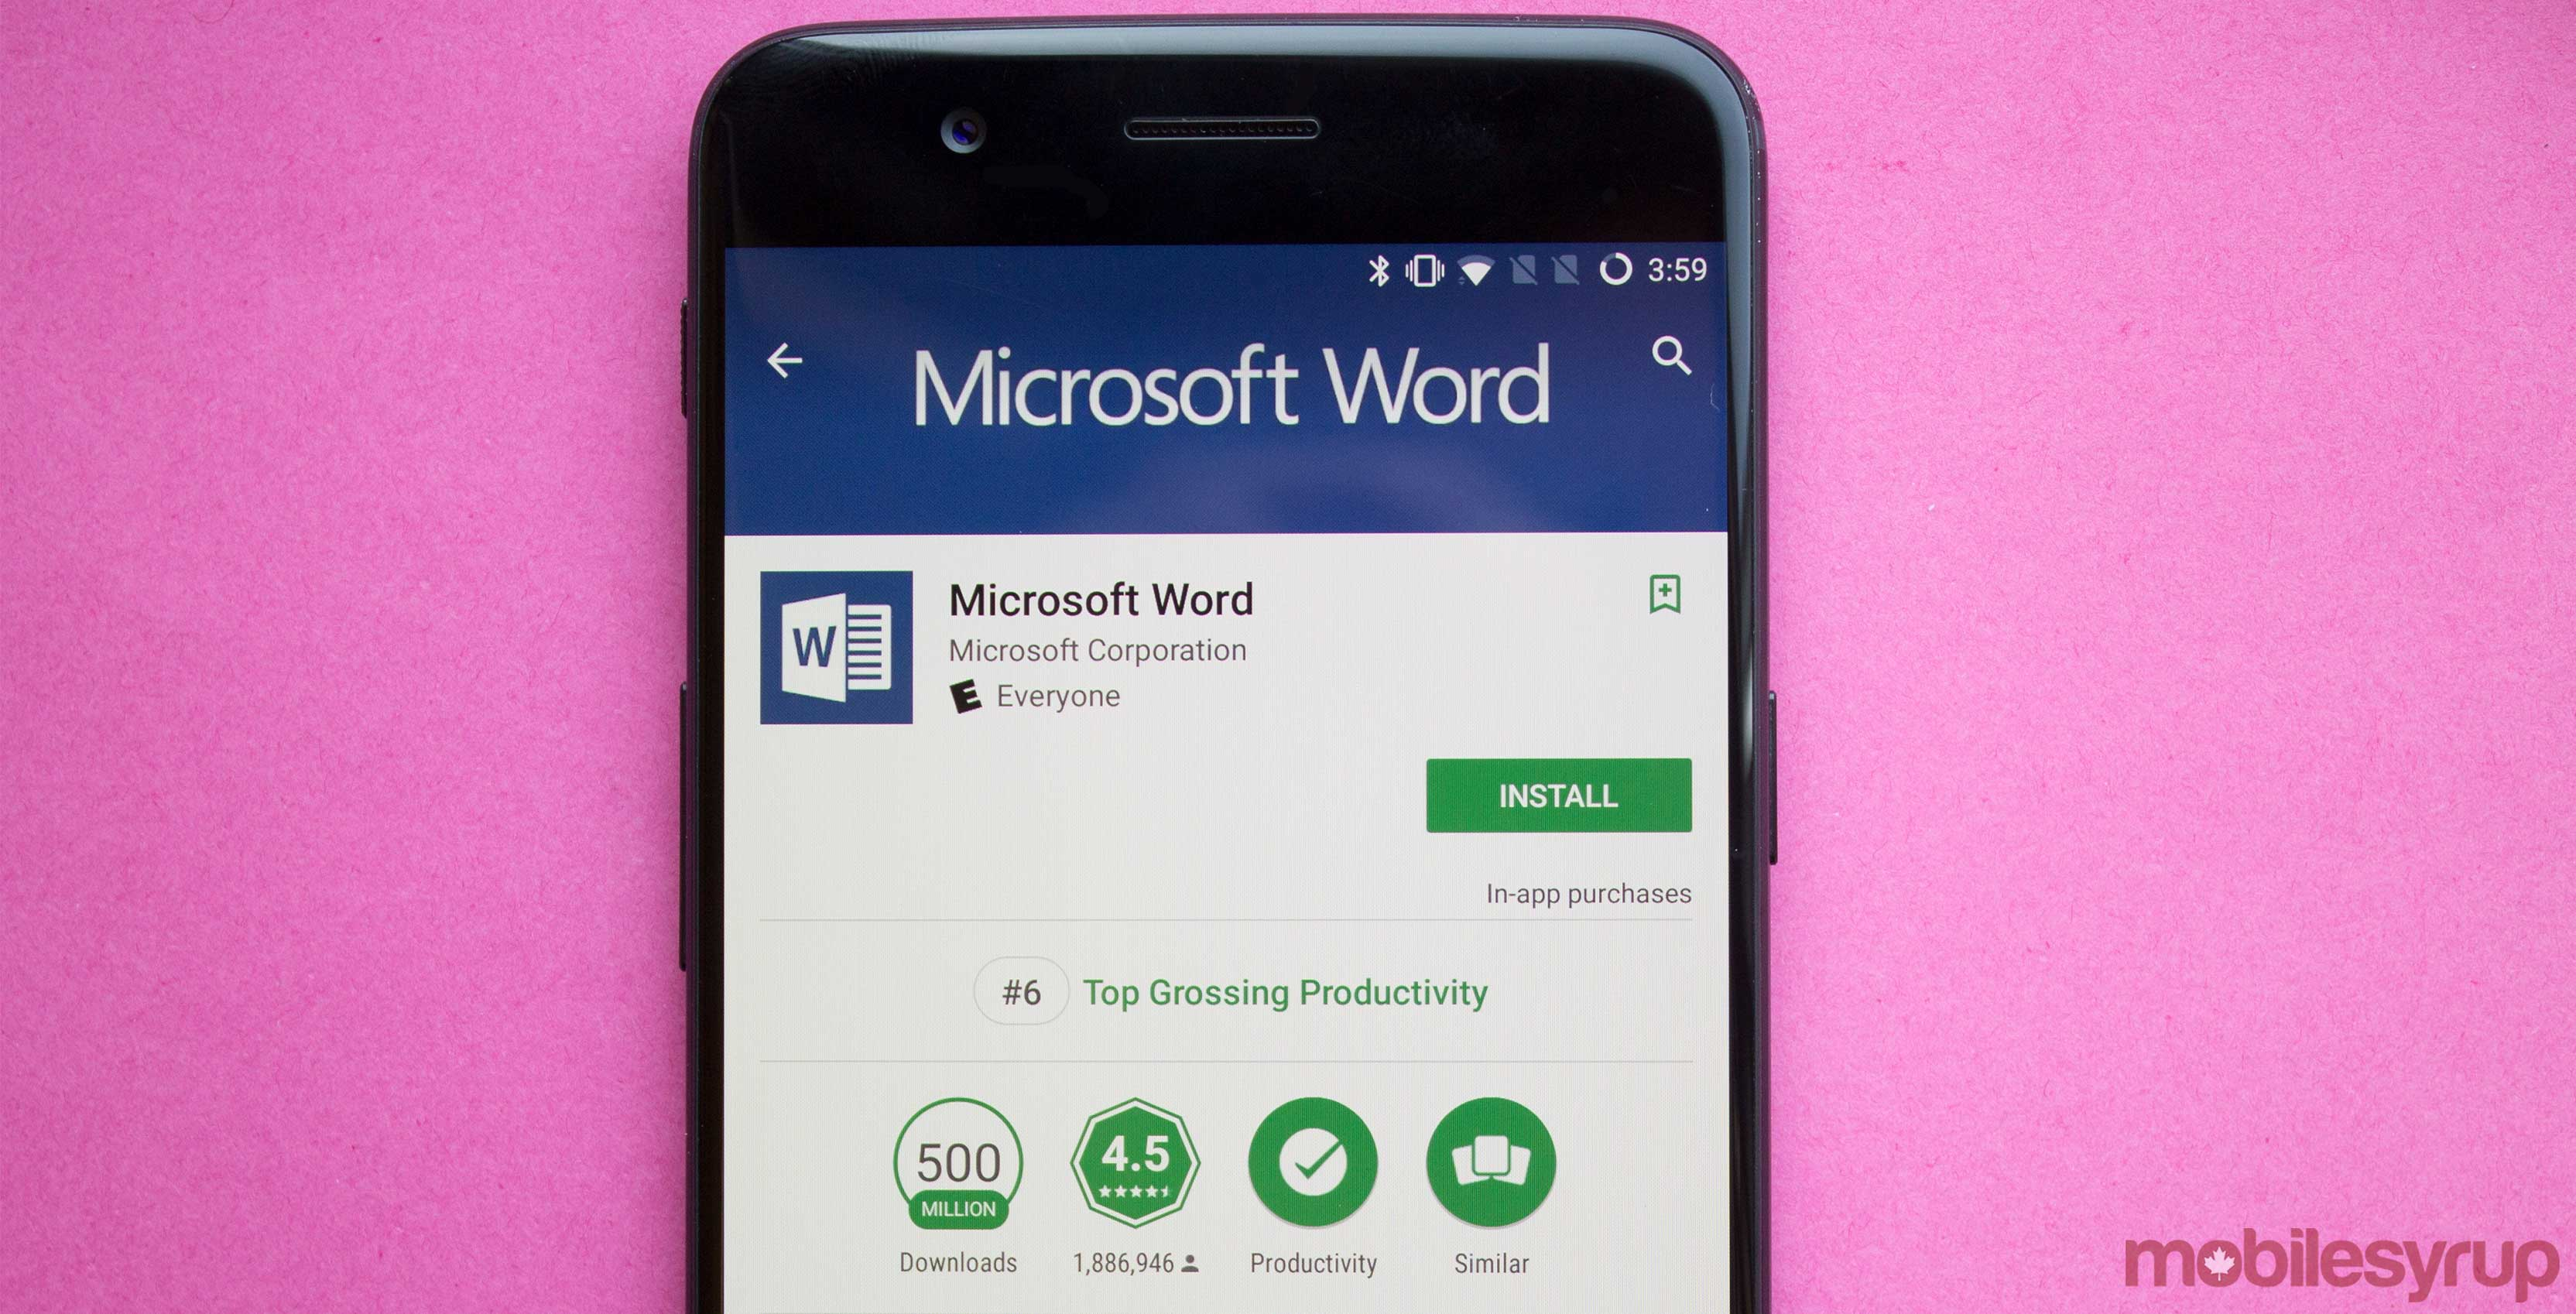 Microsoft's most popular Android app is Word